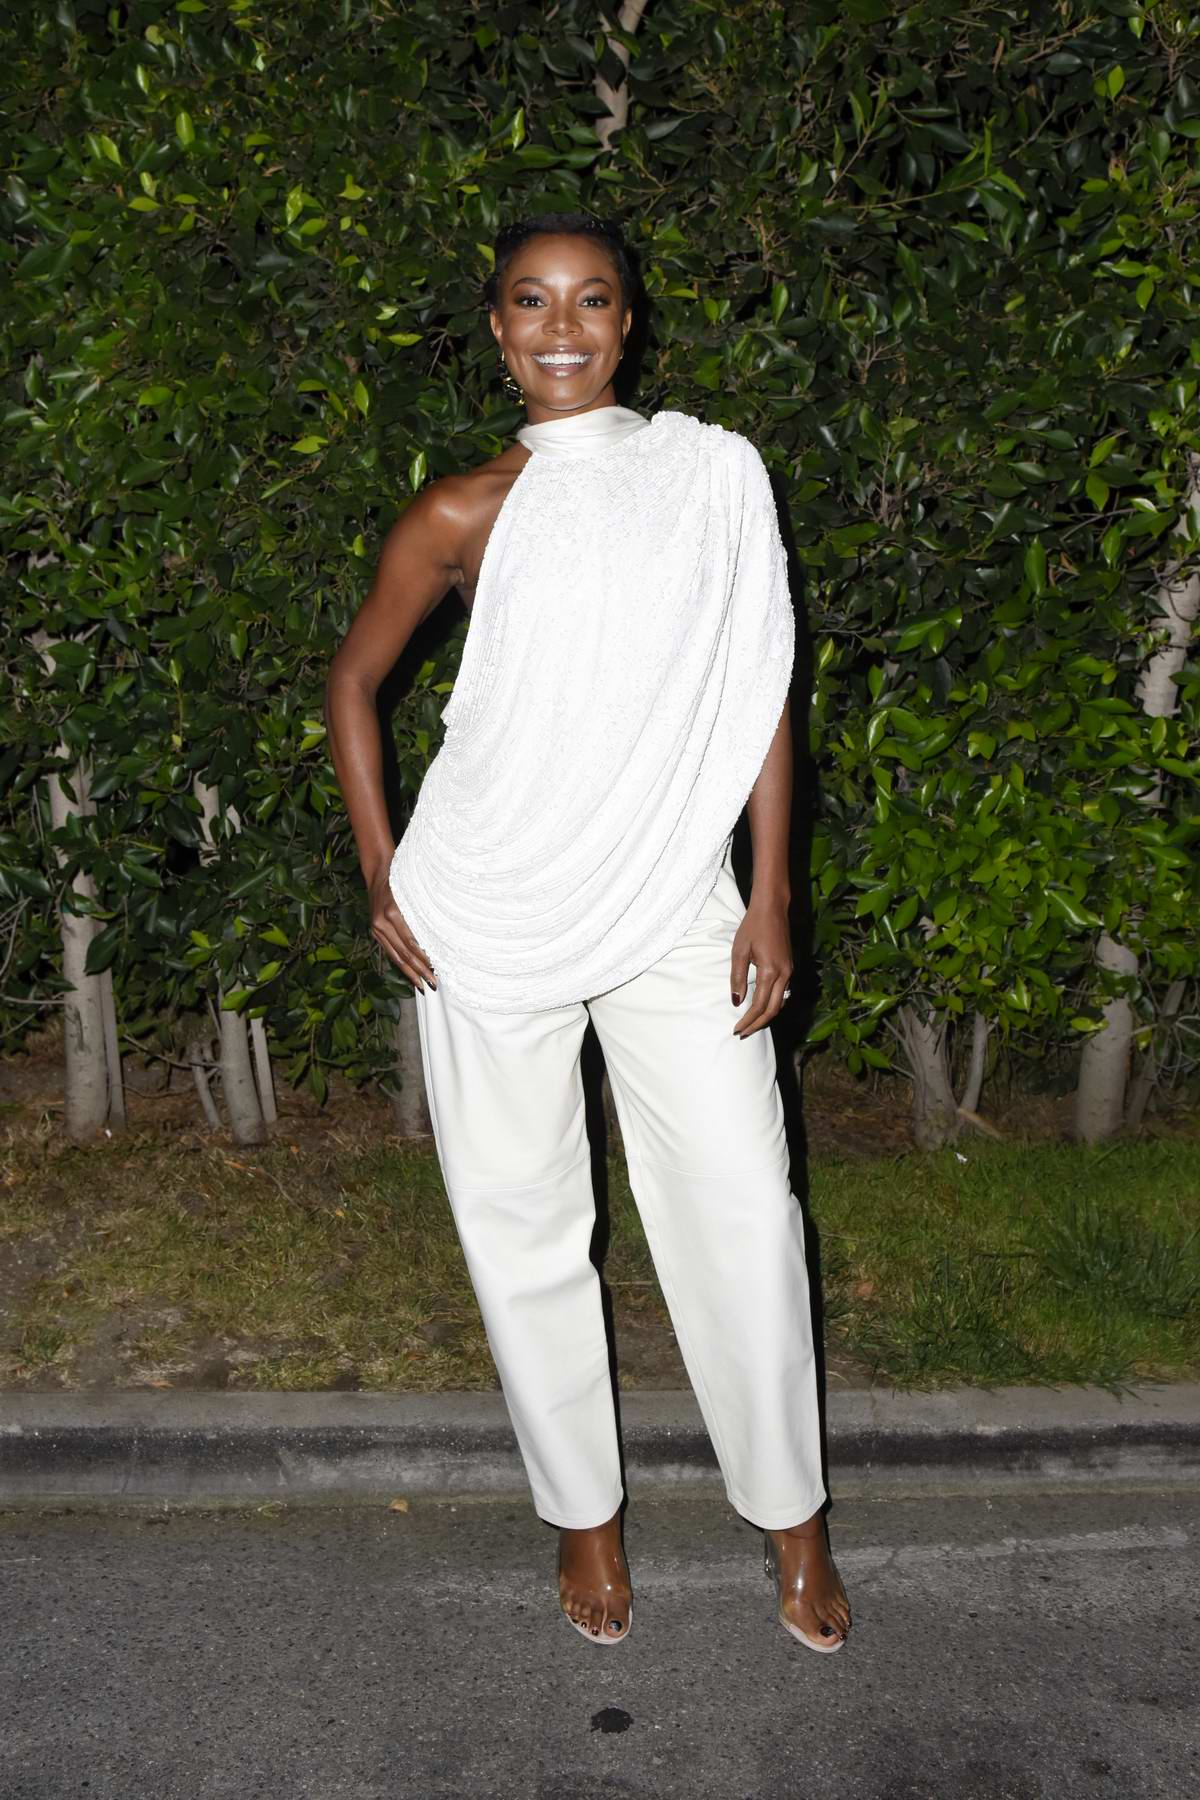 Gabrielle Union attends Cinespia's Screening Of 'Bring It On' at The Hollywood Forever Cemetery in Hollywood, California